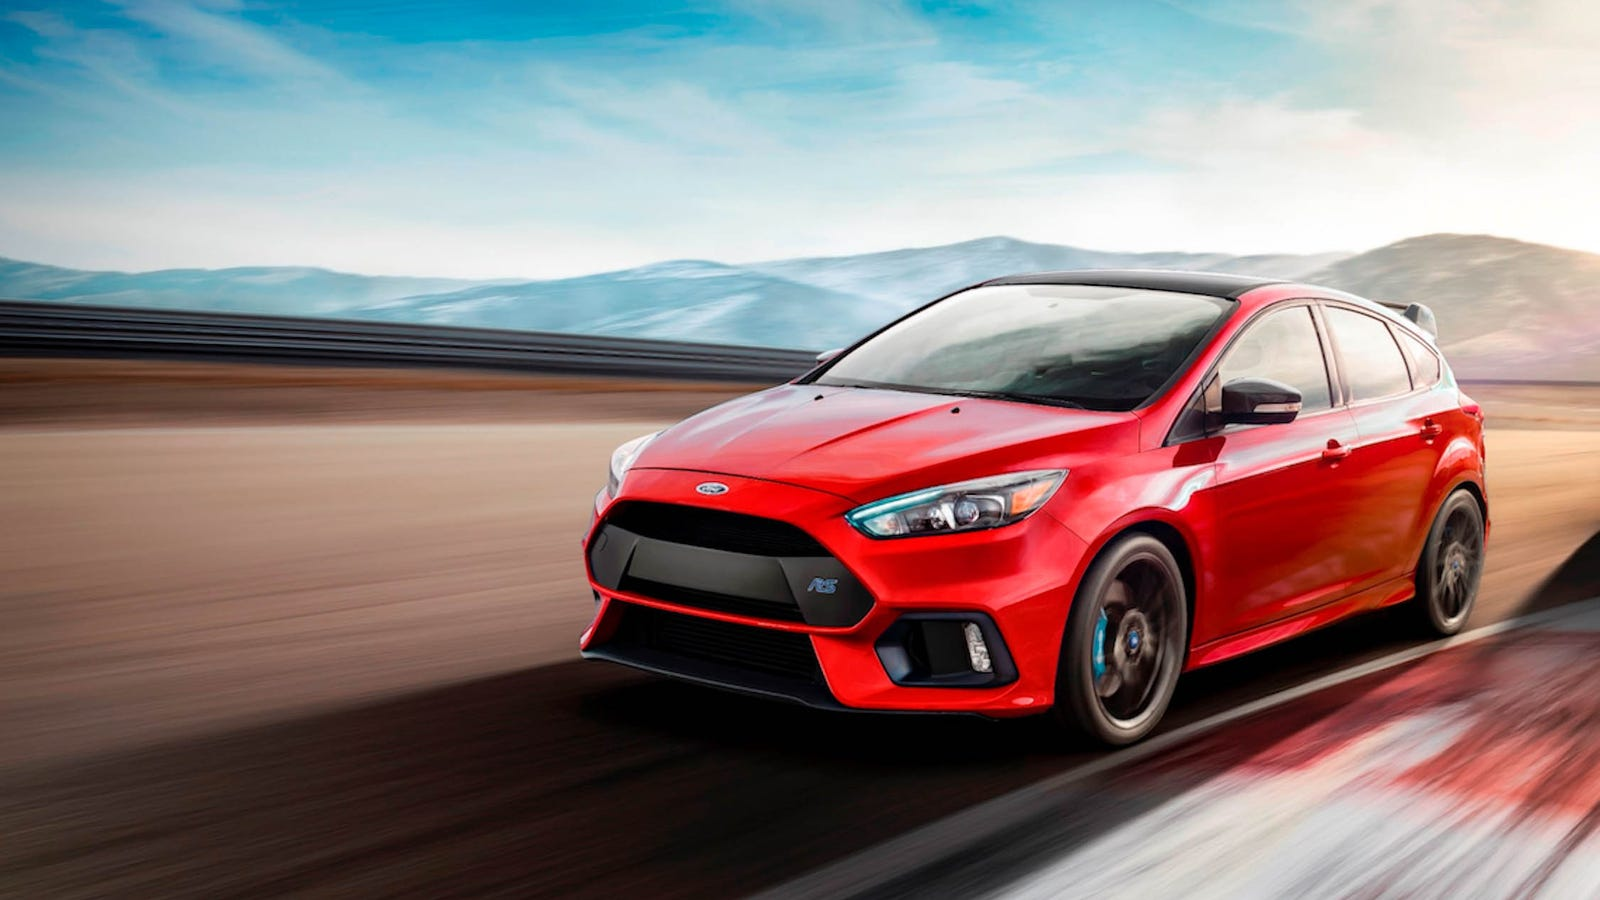 rs gcc saudi uae fordfocusrs fully ksa focus price drive news arabia ford revealed